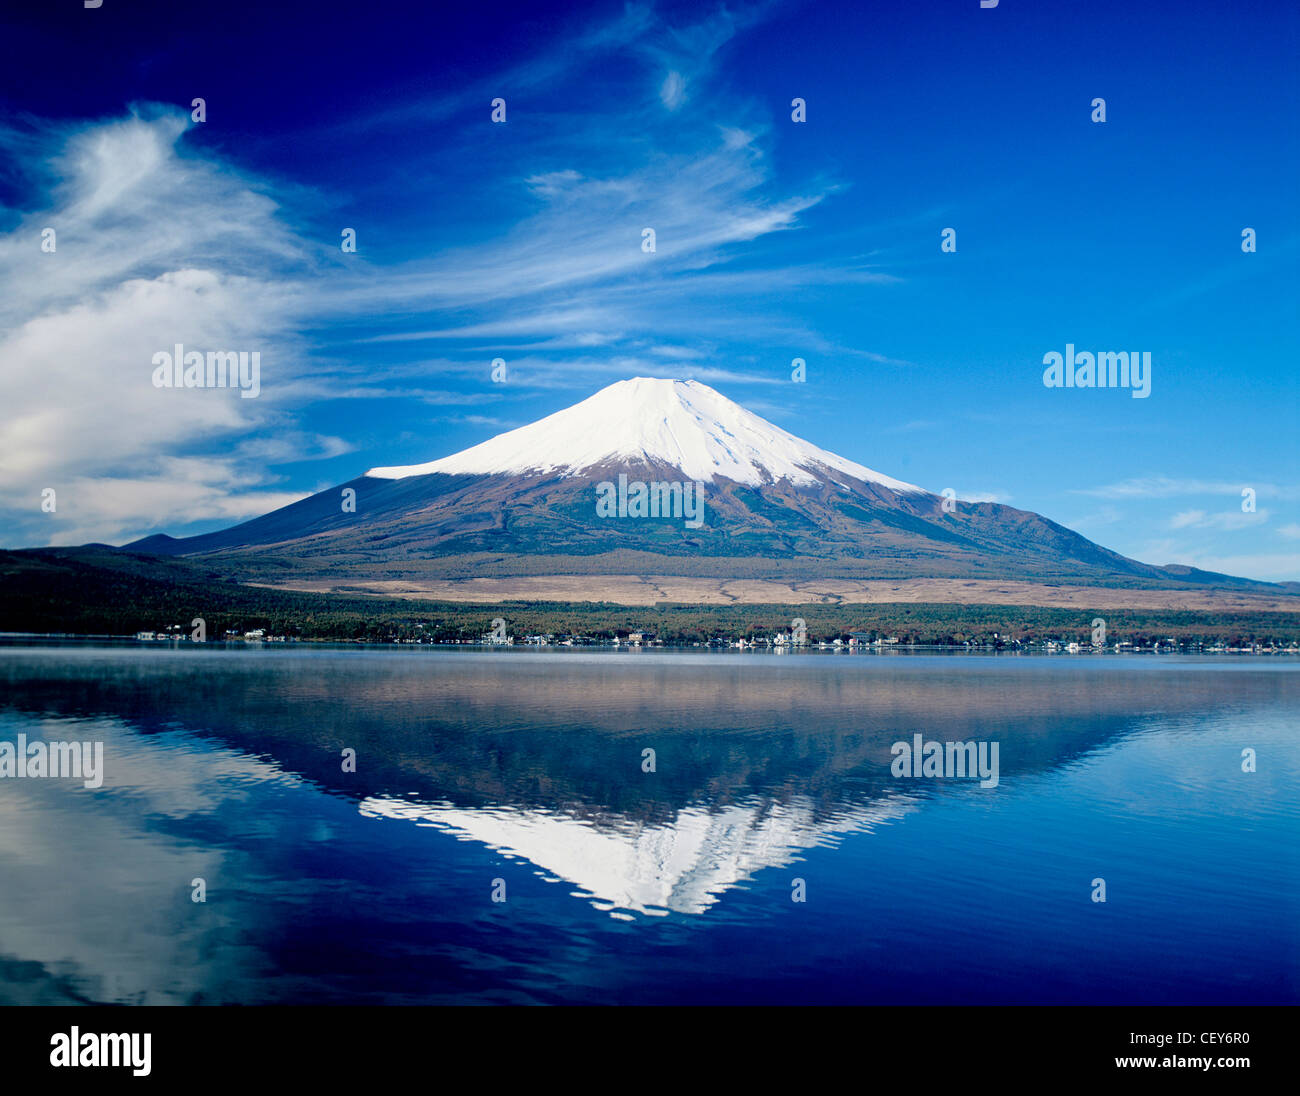 Mount Fuji and Lake Yamanakako. - Stock Image